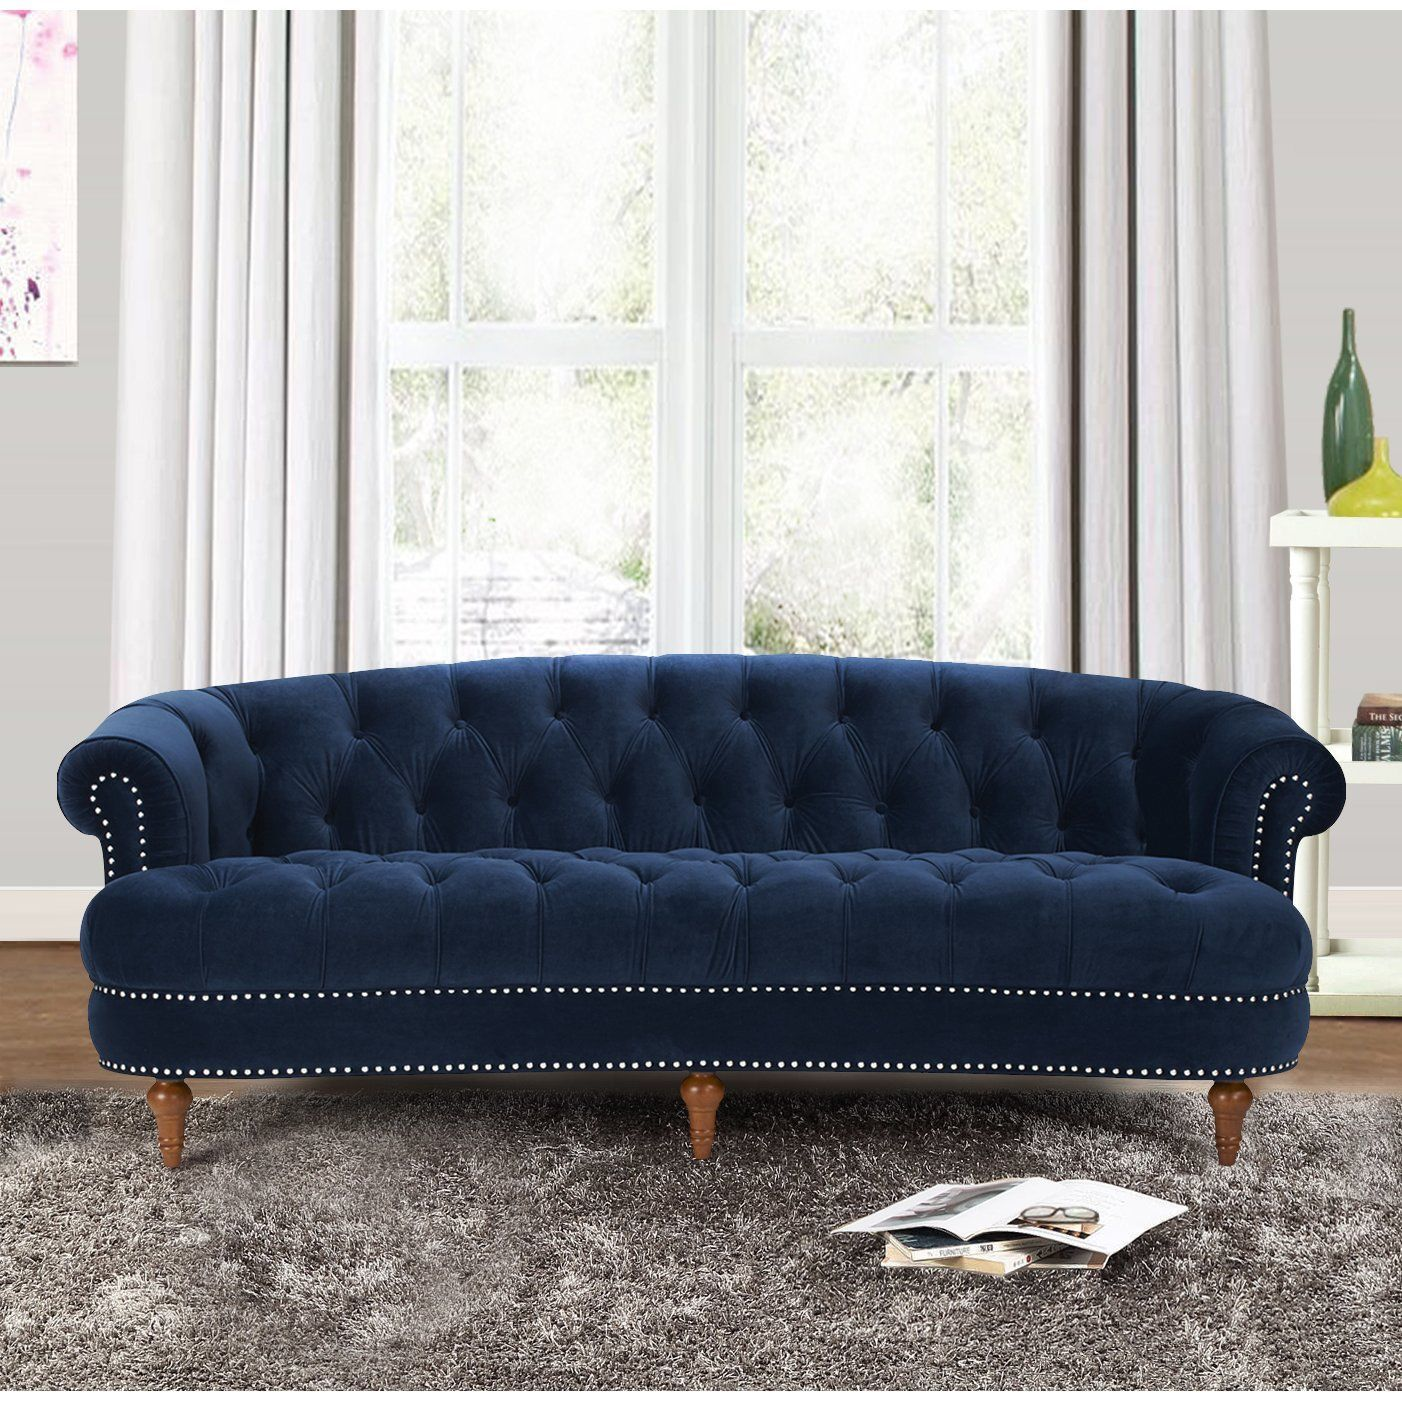 Royal Blue Grand Chesterfield Velvet Sofa Nail Heads